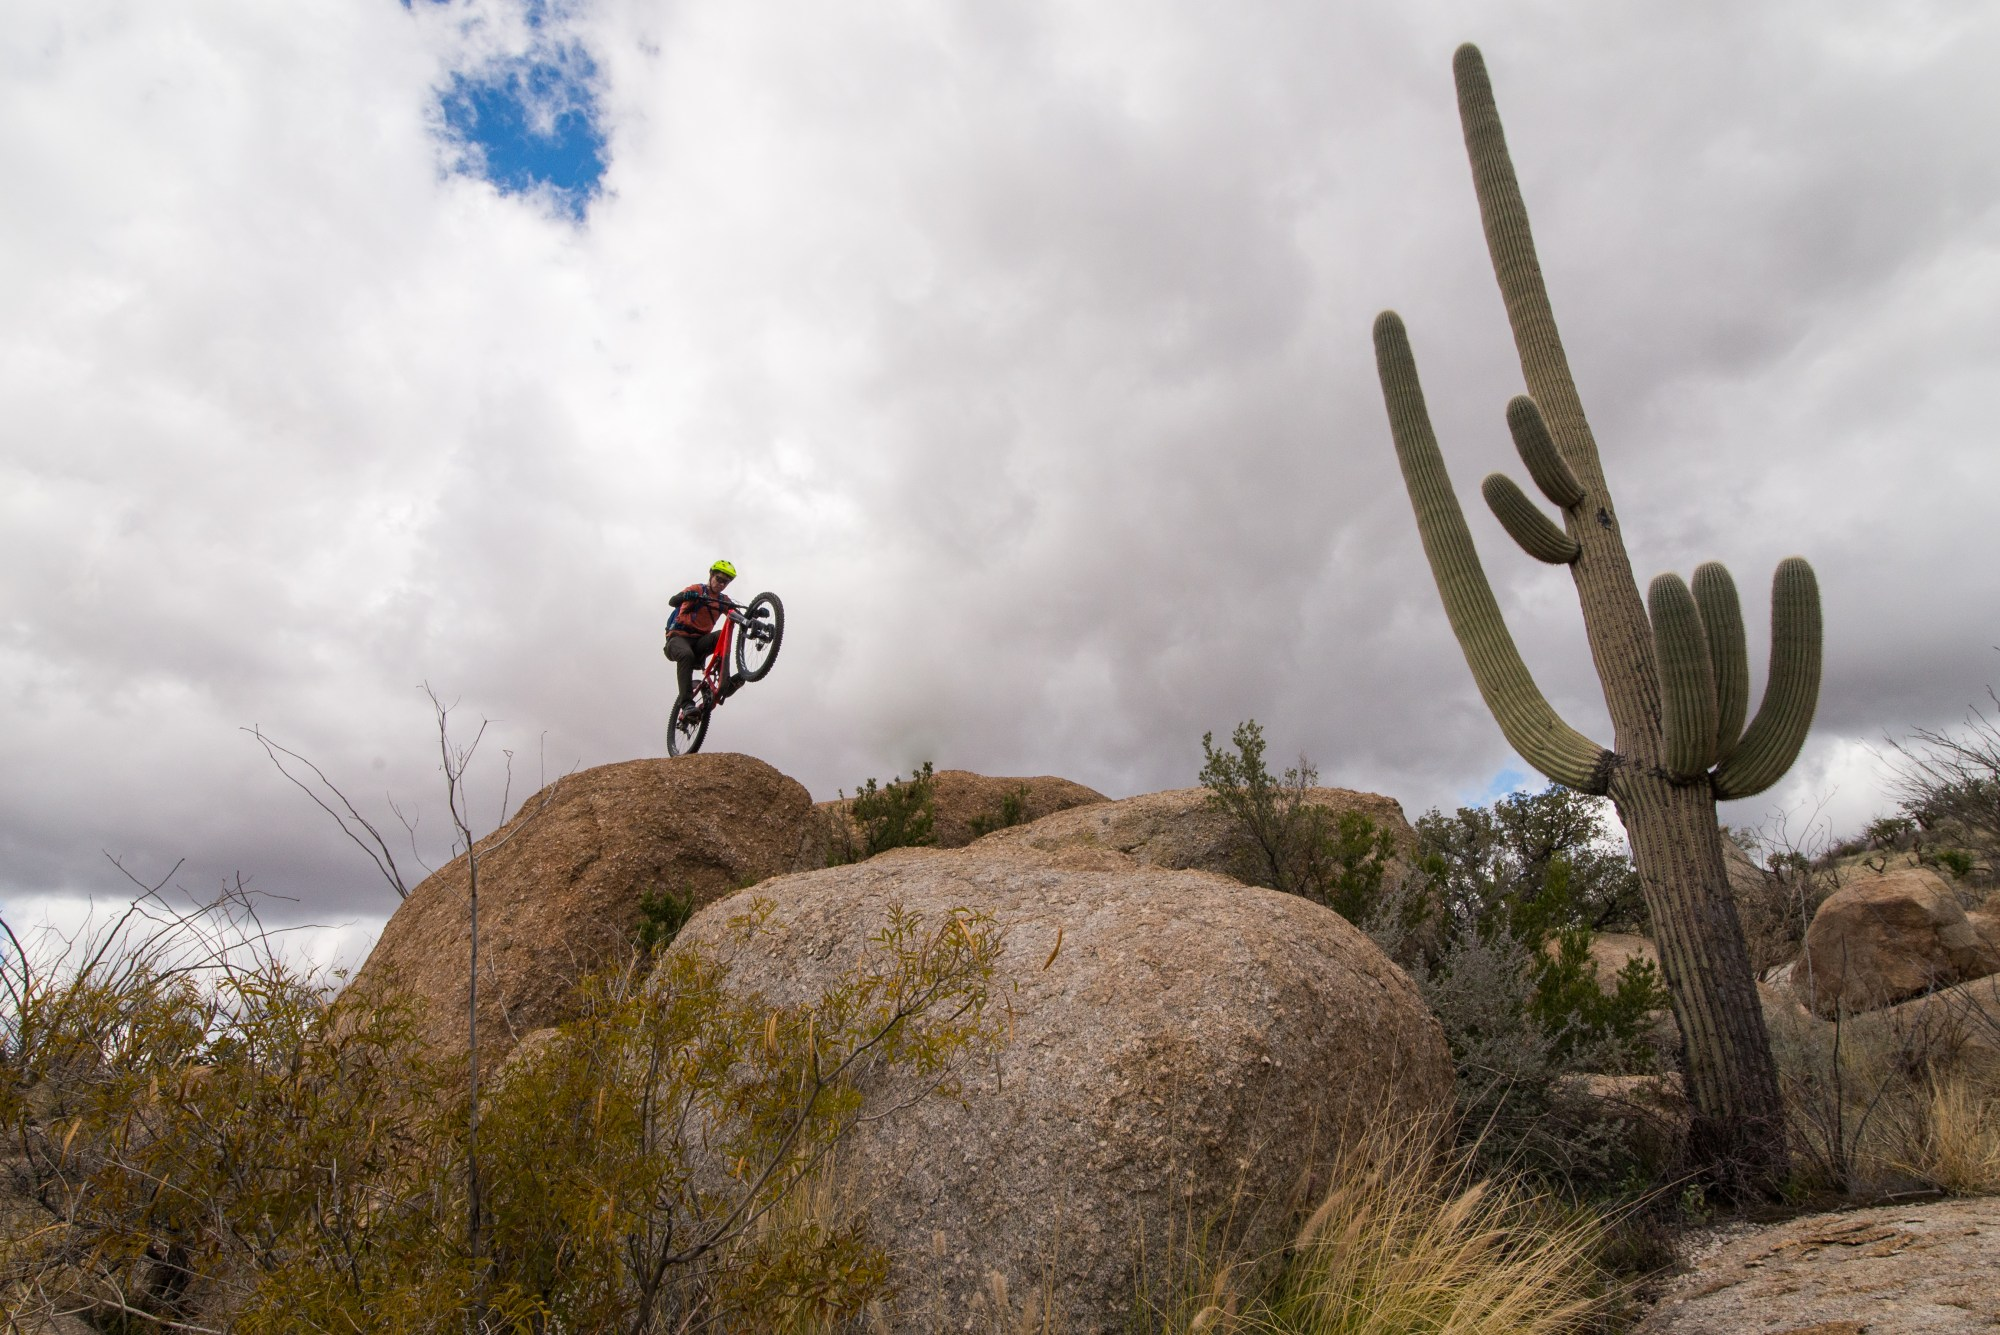 Jeff making a jump off a rock with a large saguaro cactus in the foreground and looming storm clouds above.